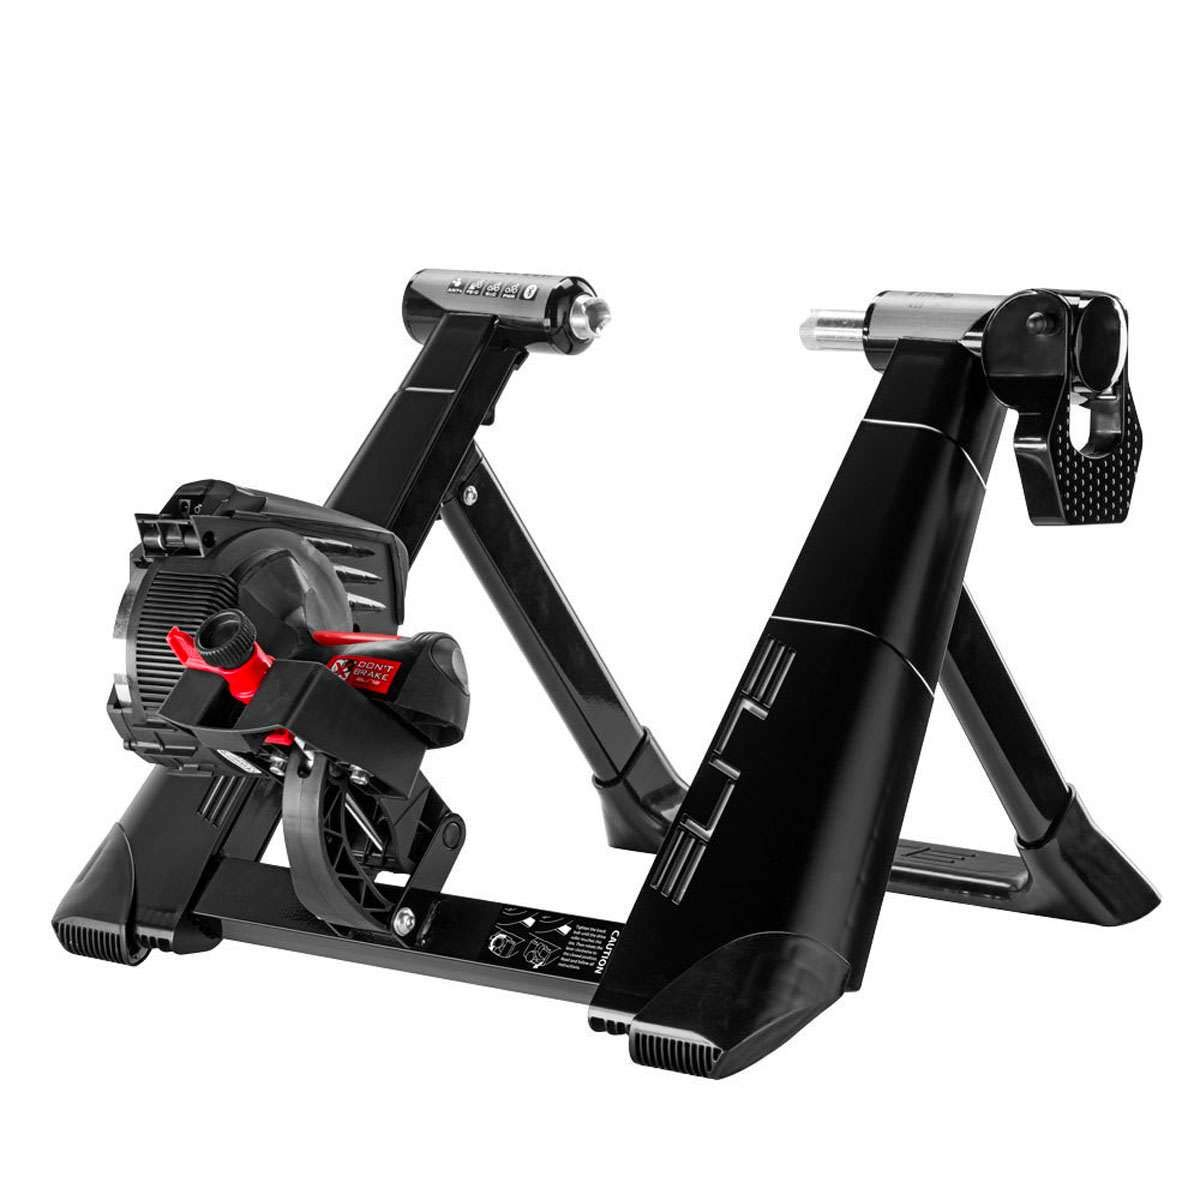 Amazon.com : Elite Novo Smart Interactive Trainer with Bluetooth, for Indoor Cycling Workout : Sports & Outdoors